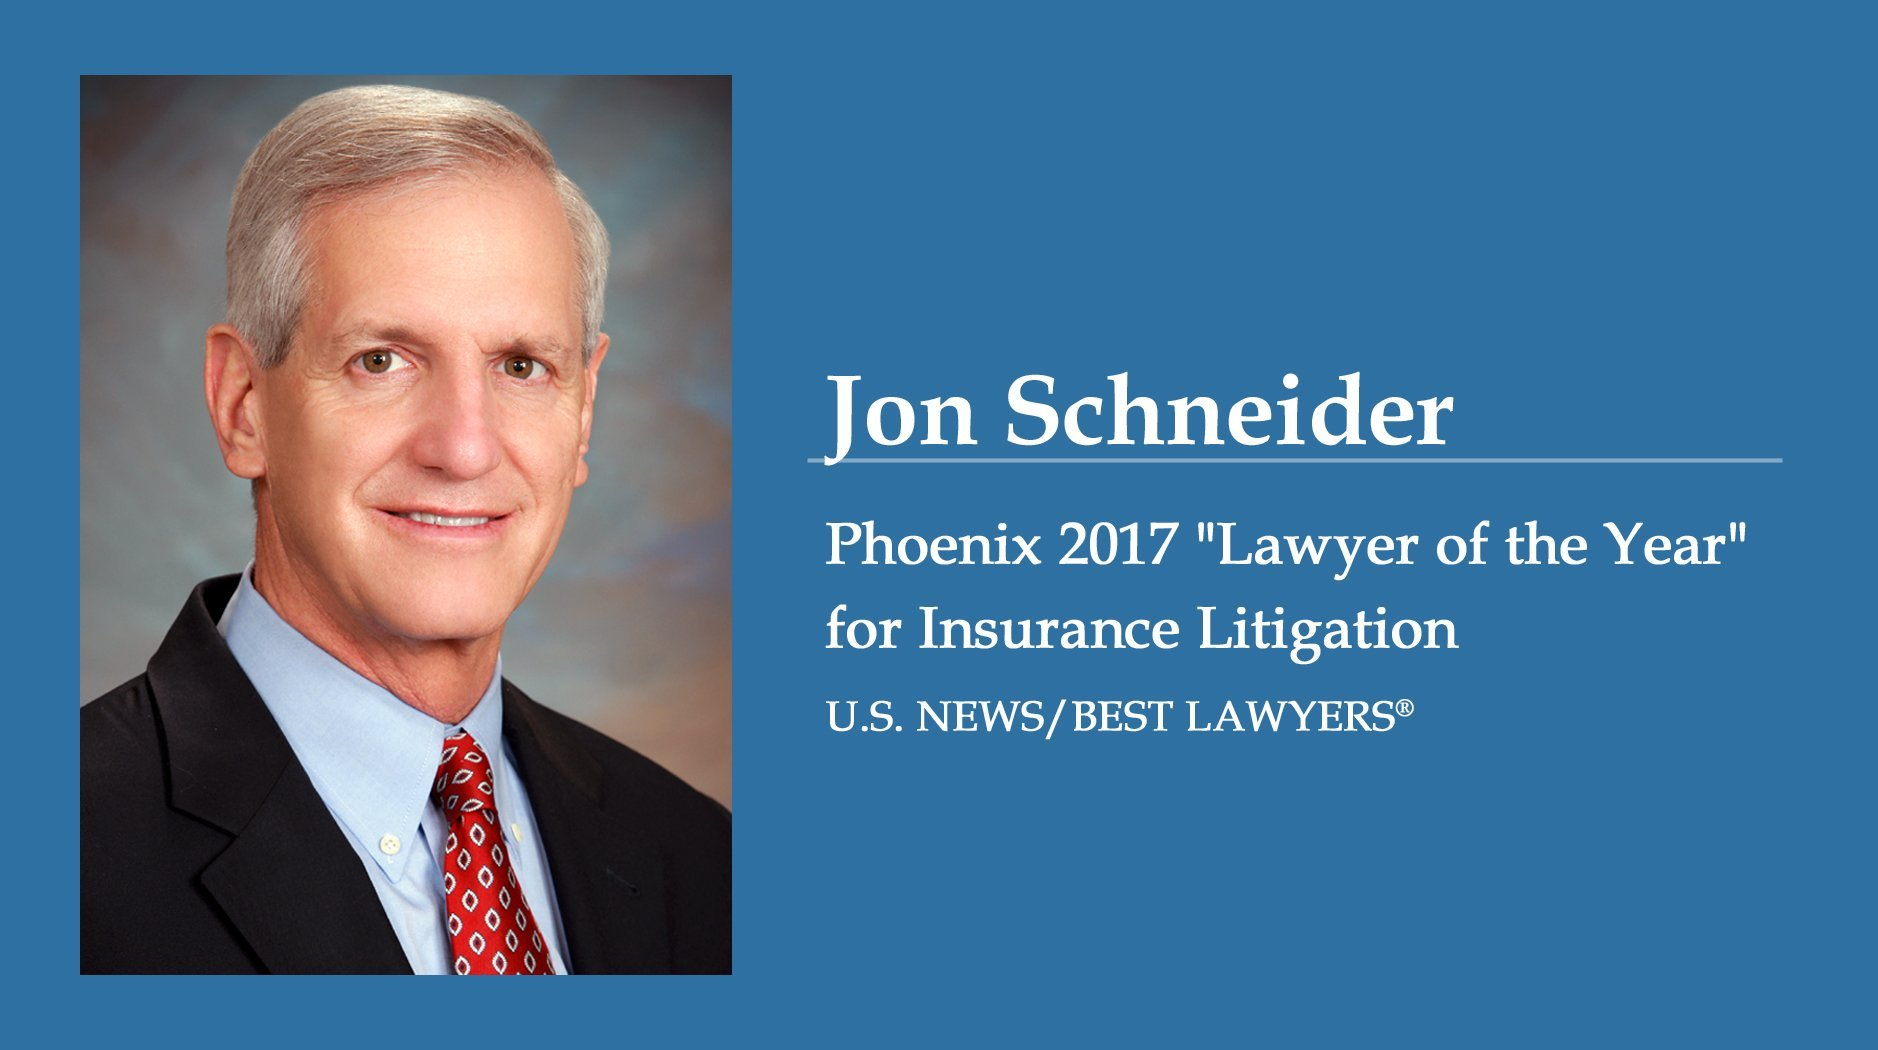 Jon Schneider, Insurance Litigation Lawyer of the Year